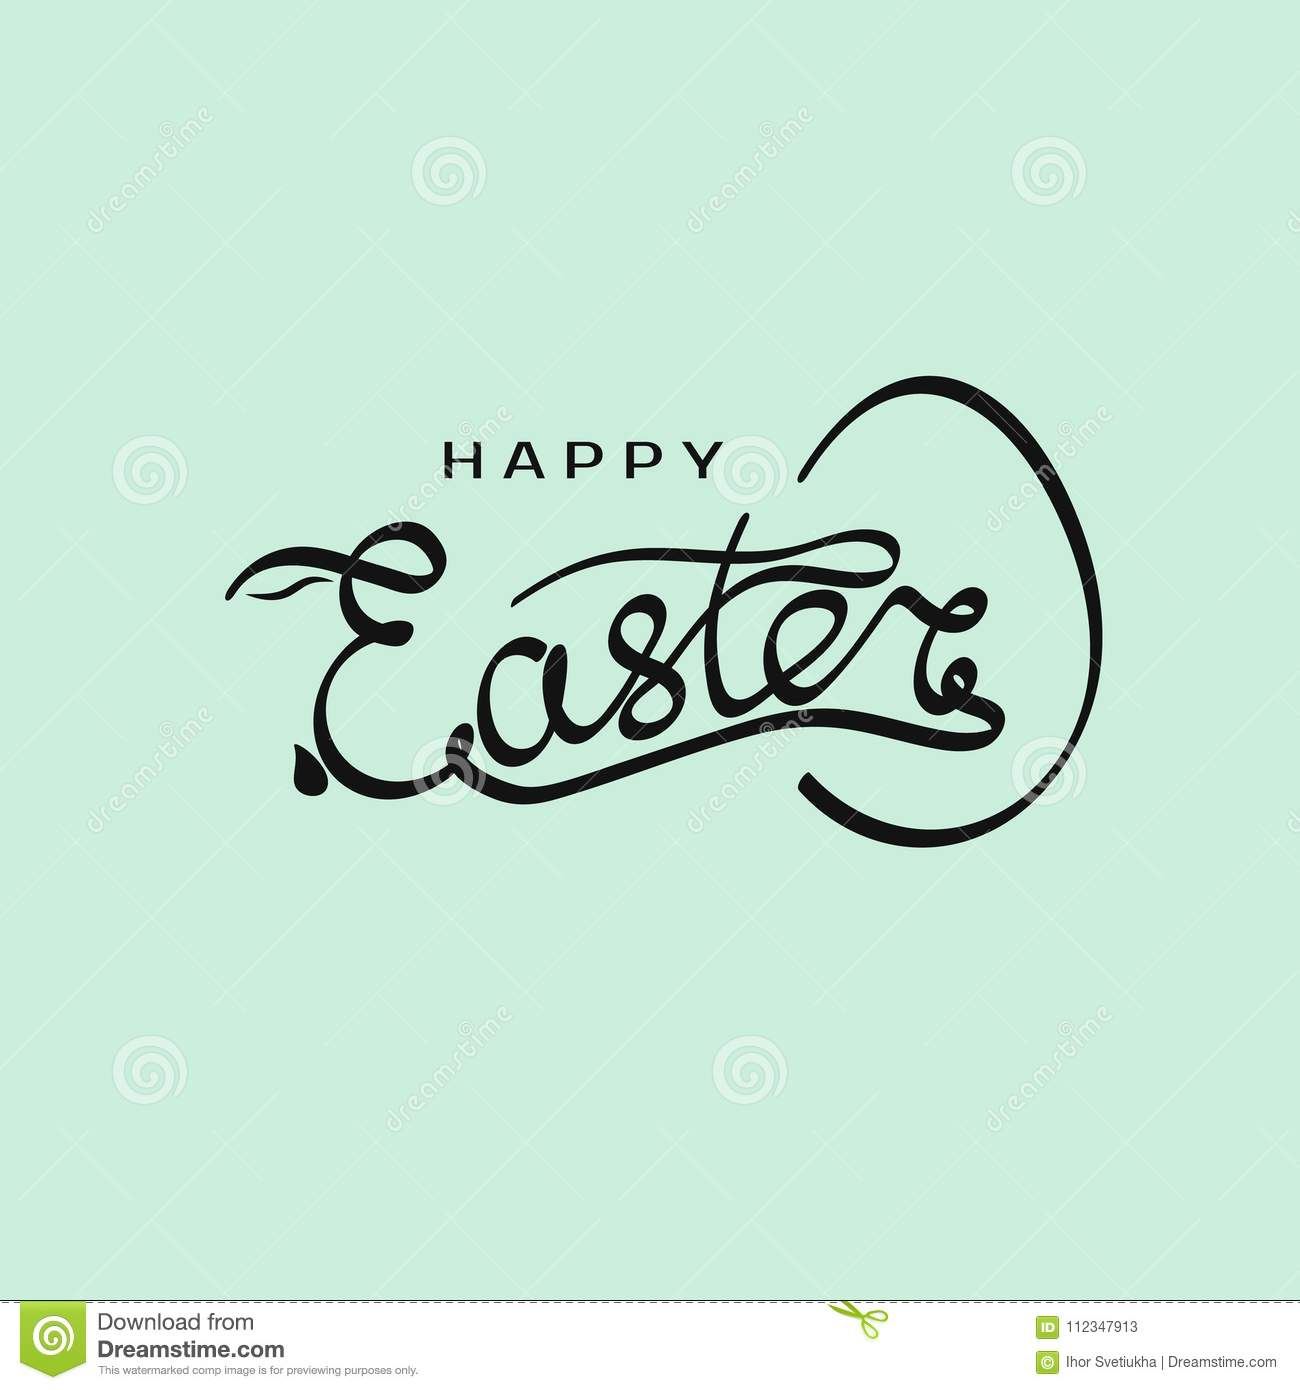 hand drawn inscription happy easter with rabbit silhouette in letter e and egg template vector